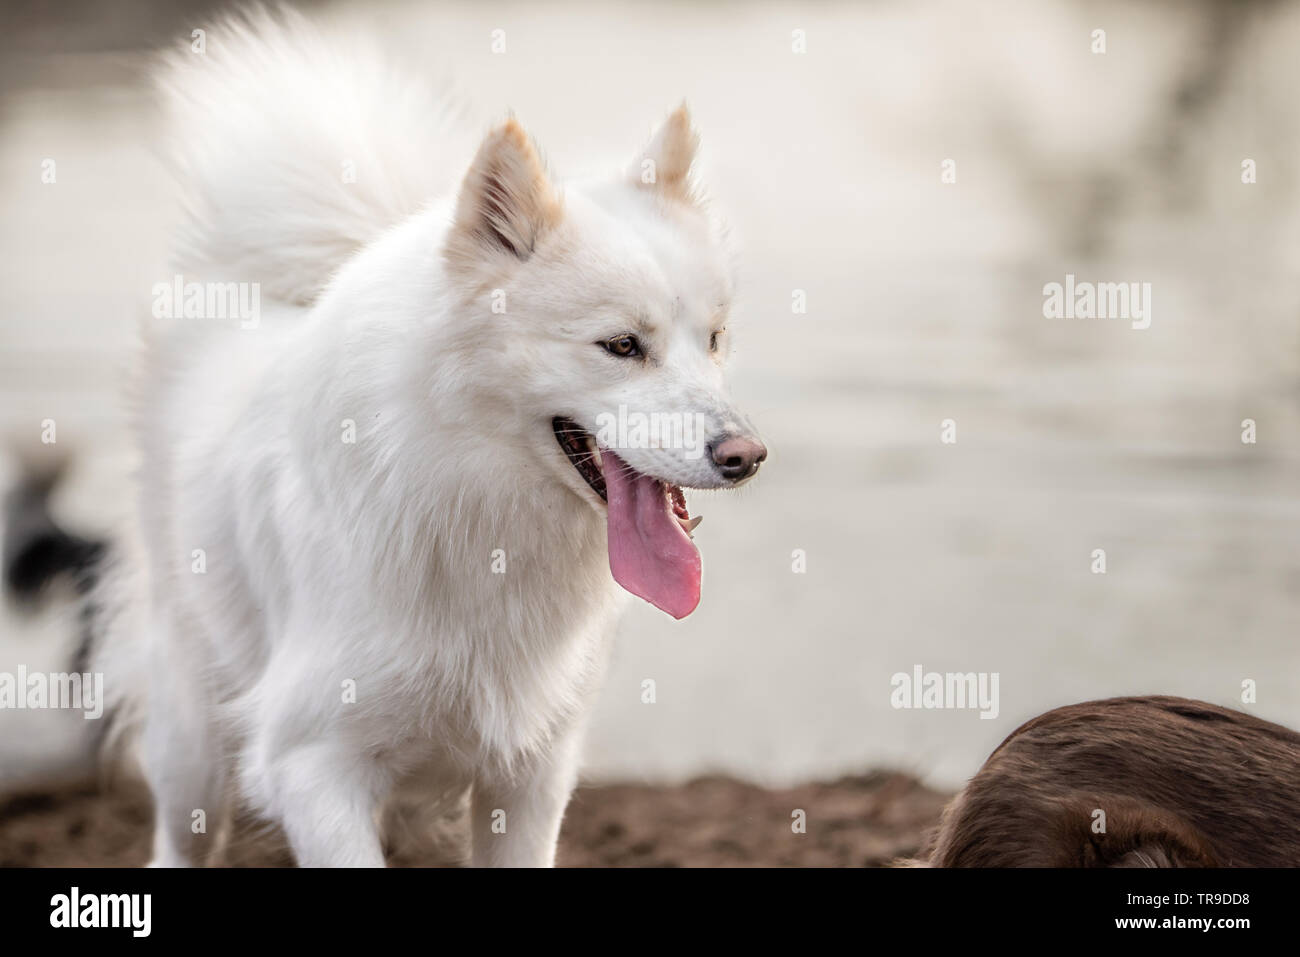 Cute Fluffy White Samoyed Dog Panting With A Smile At The Dog Park With Water In The Background Stock Photo Alamy